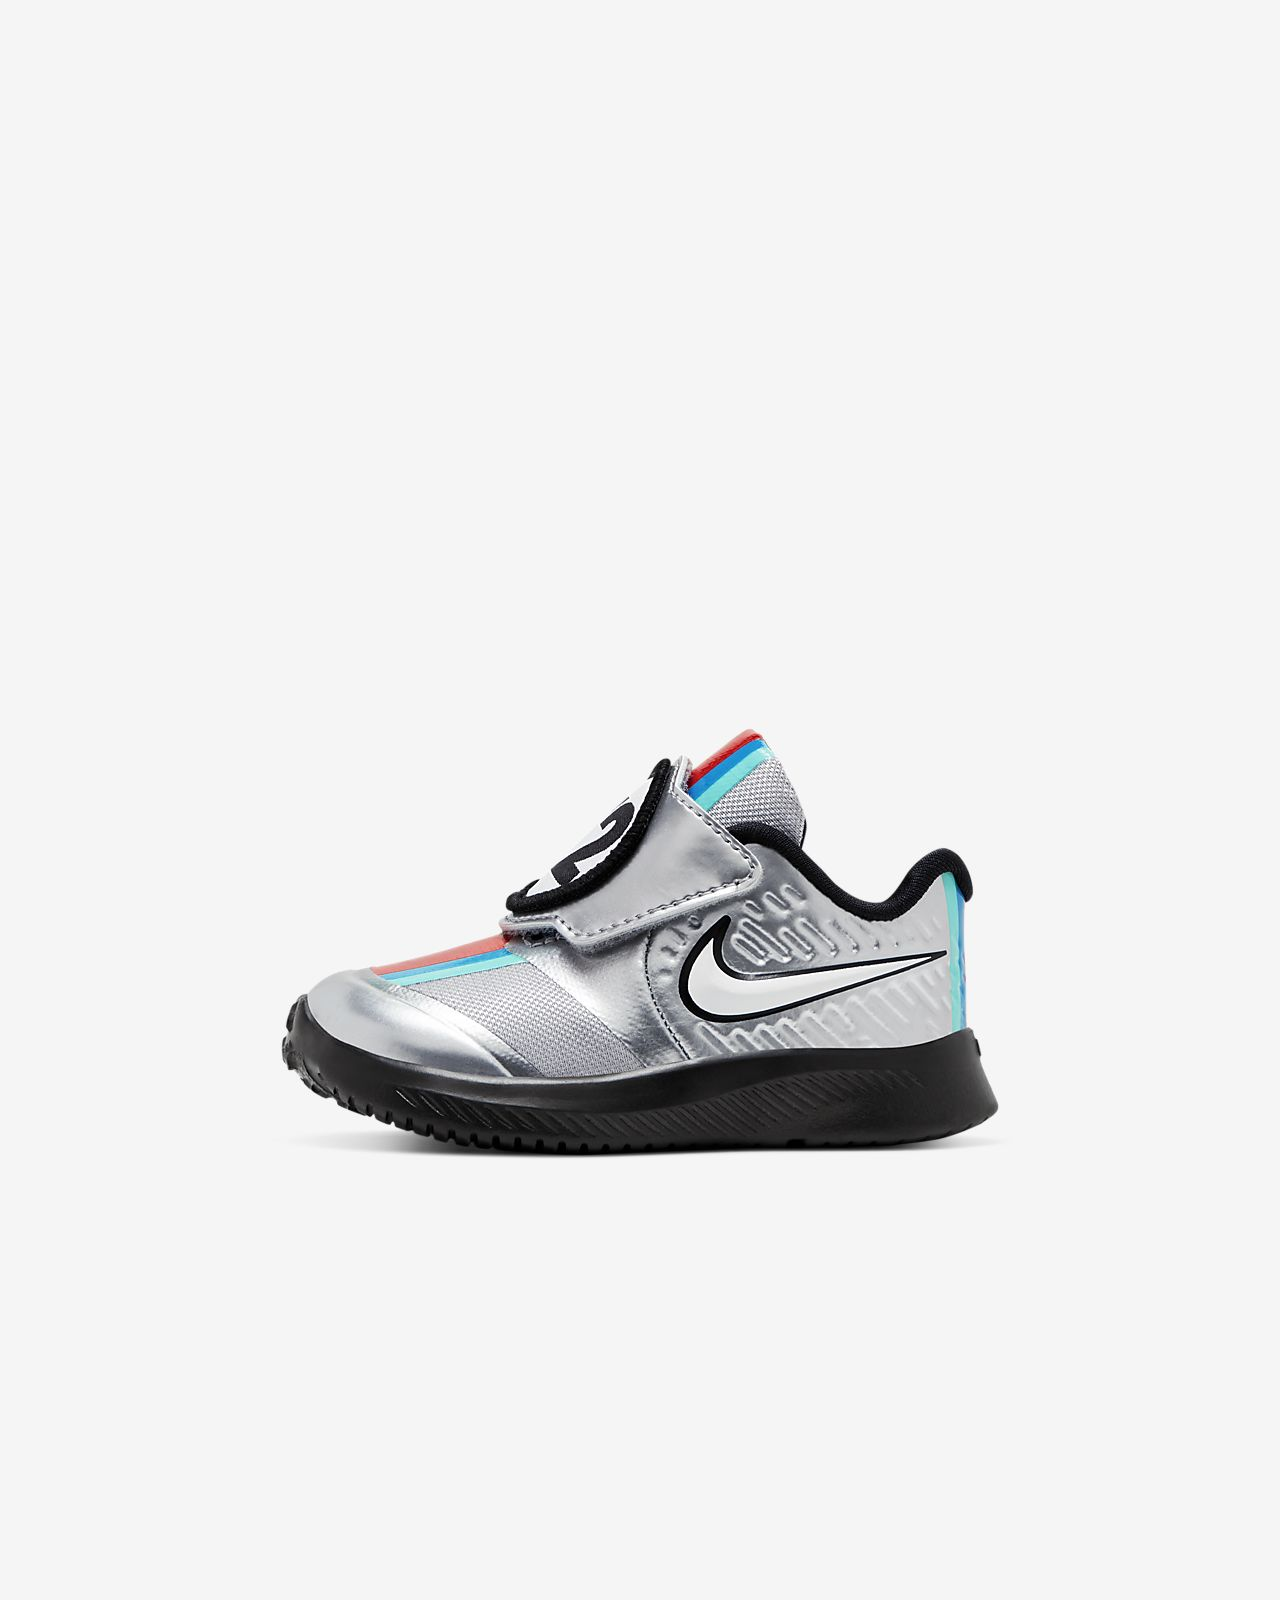 Nike Star Runner 2 Auto Baby and Toddler Shoe